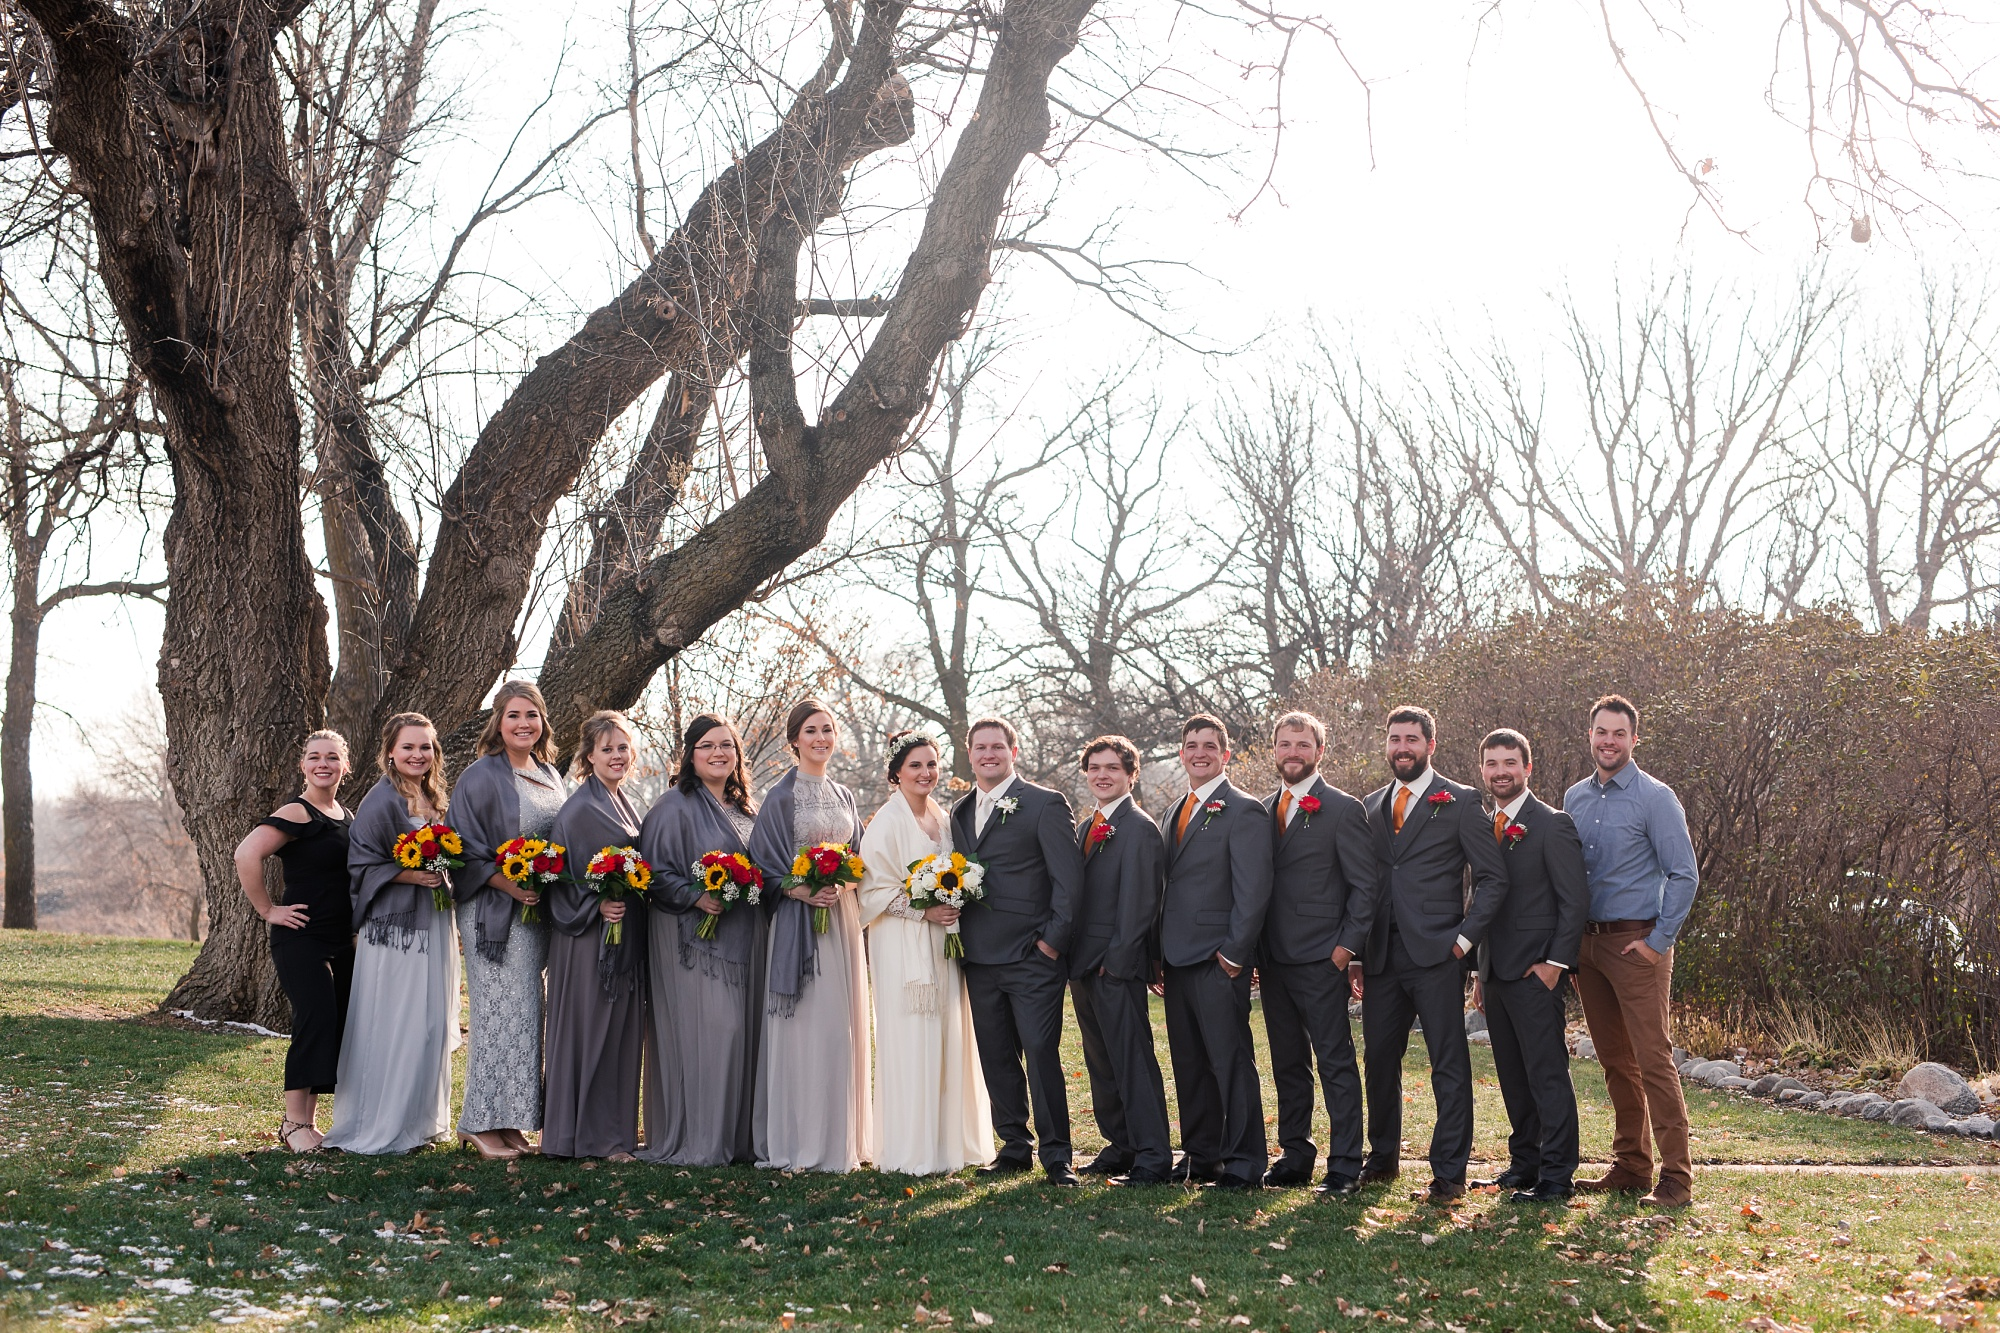 Amber Langerud_Rustic Oaks, MN winter barn wedding_0531.jpg